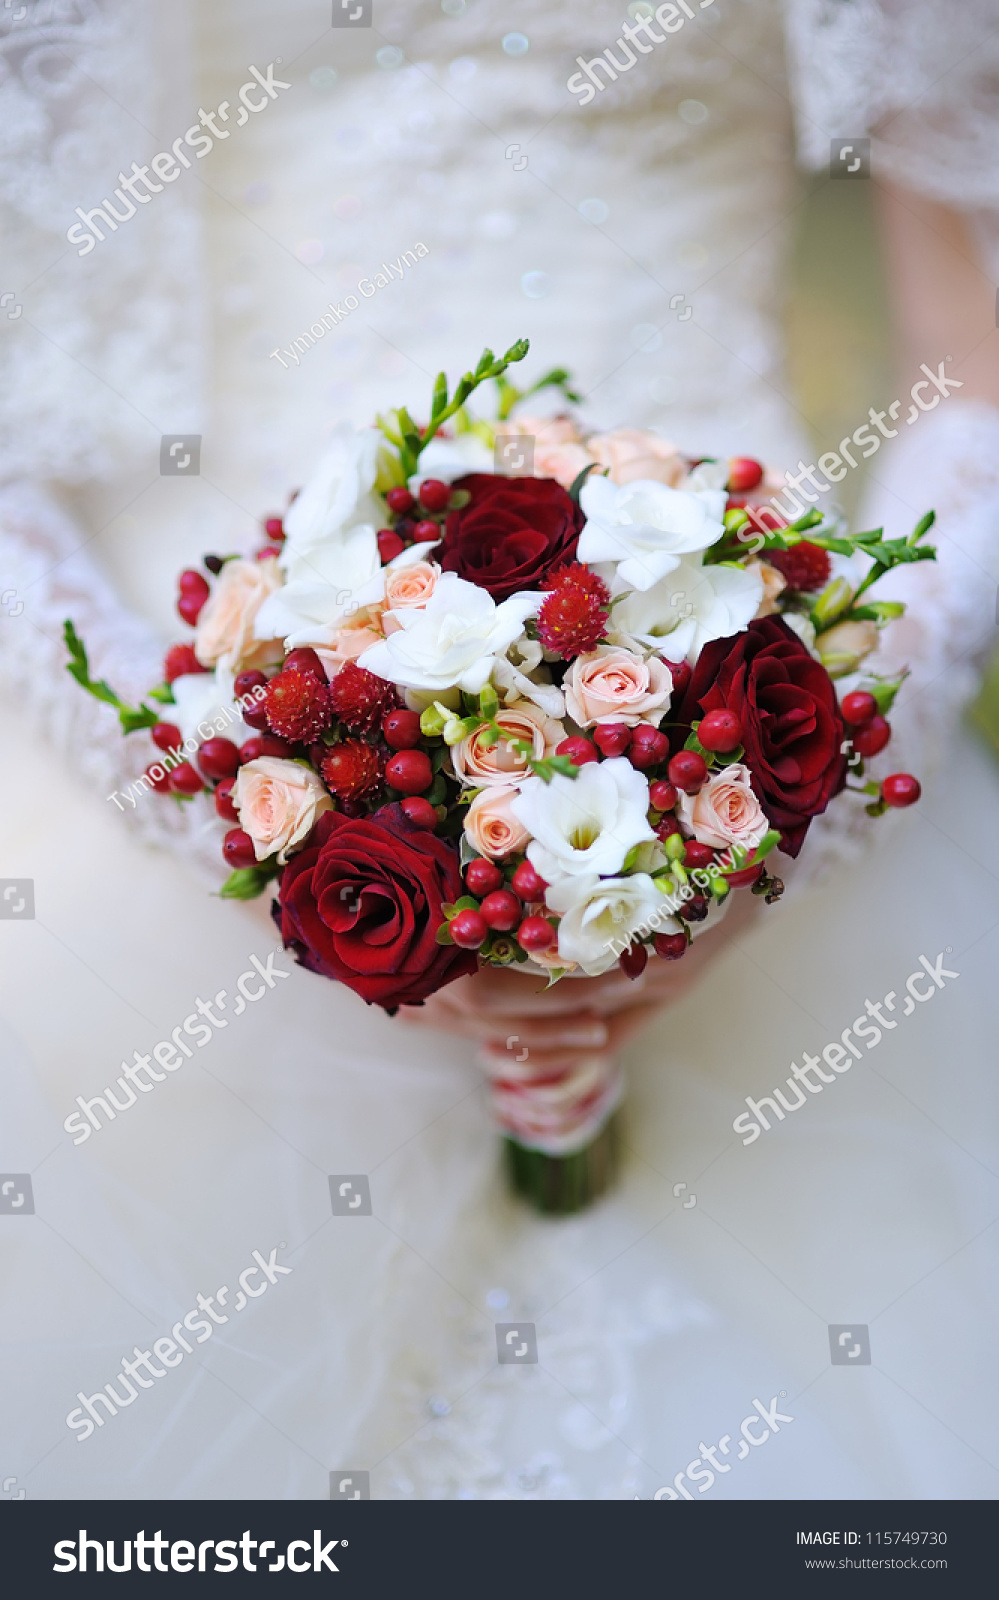 Wedding Bouquet Red White Flowers Stock Photo Royalty Free